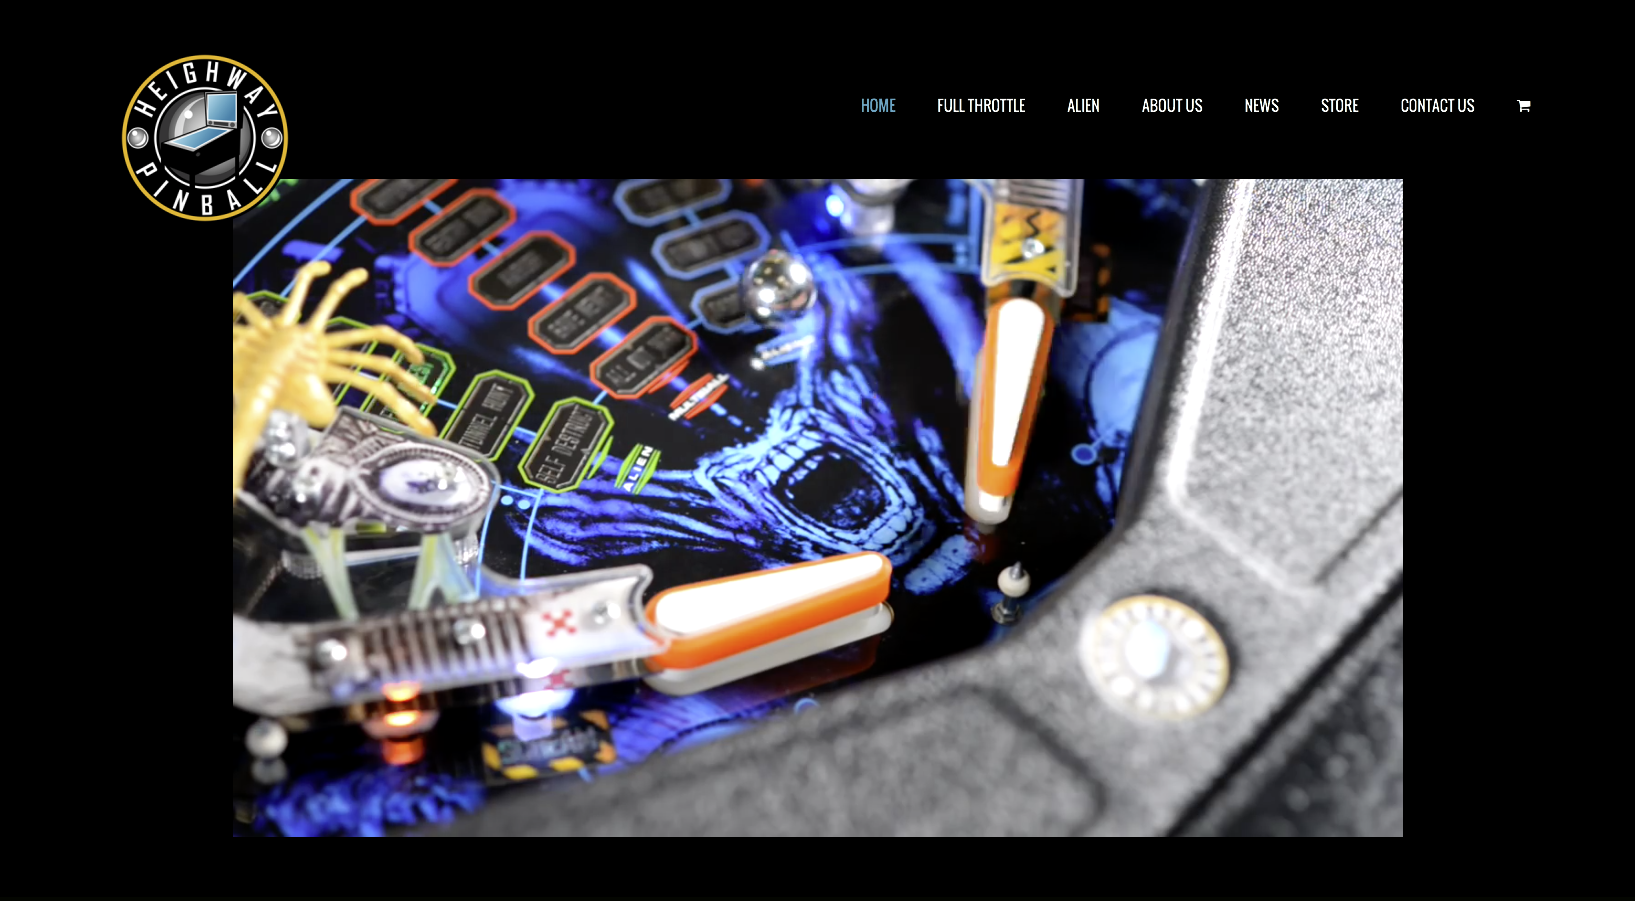 Heighway Pinball homepage design with Alien Pinball Video embed